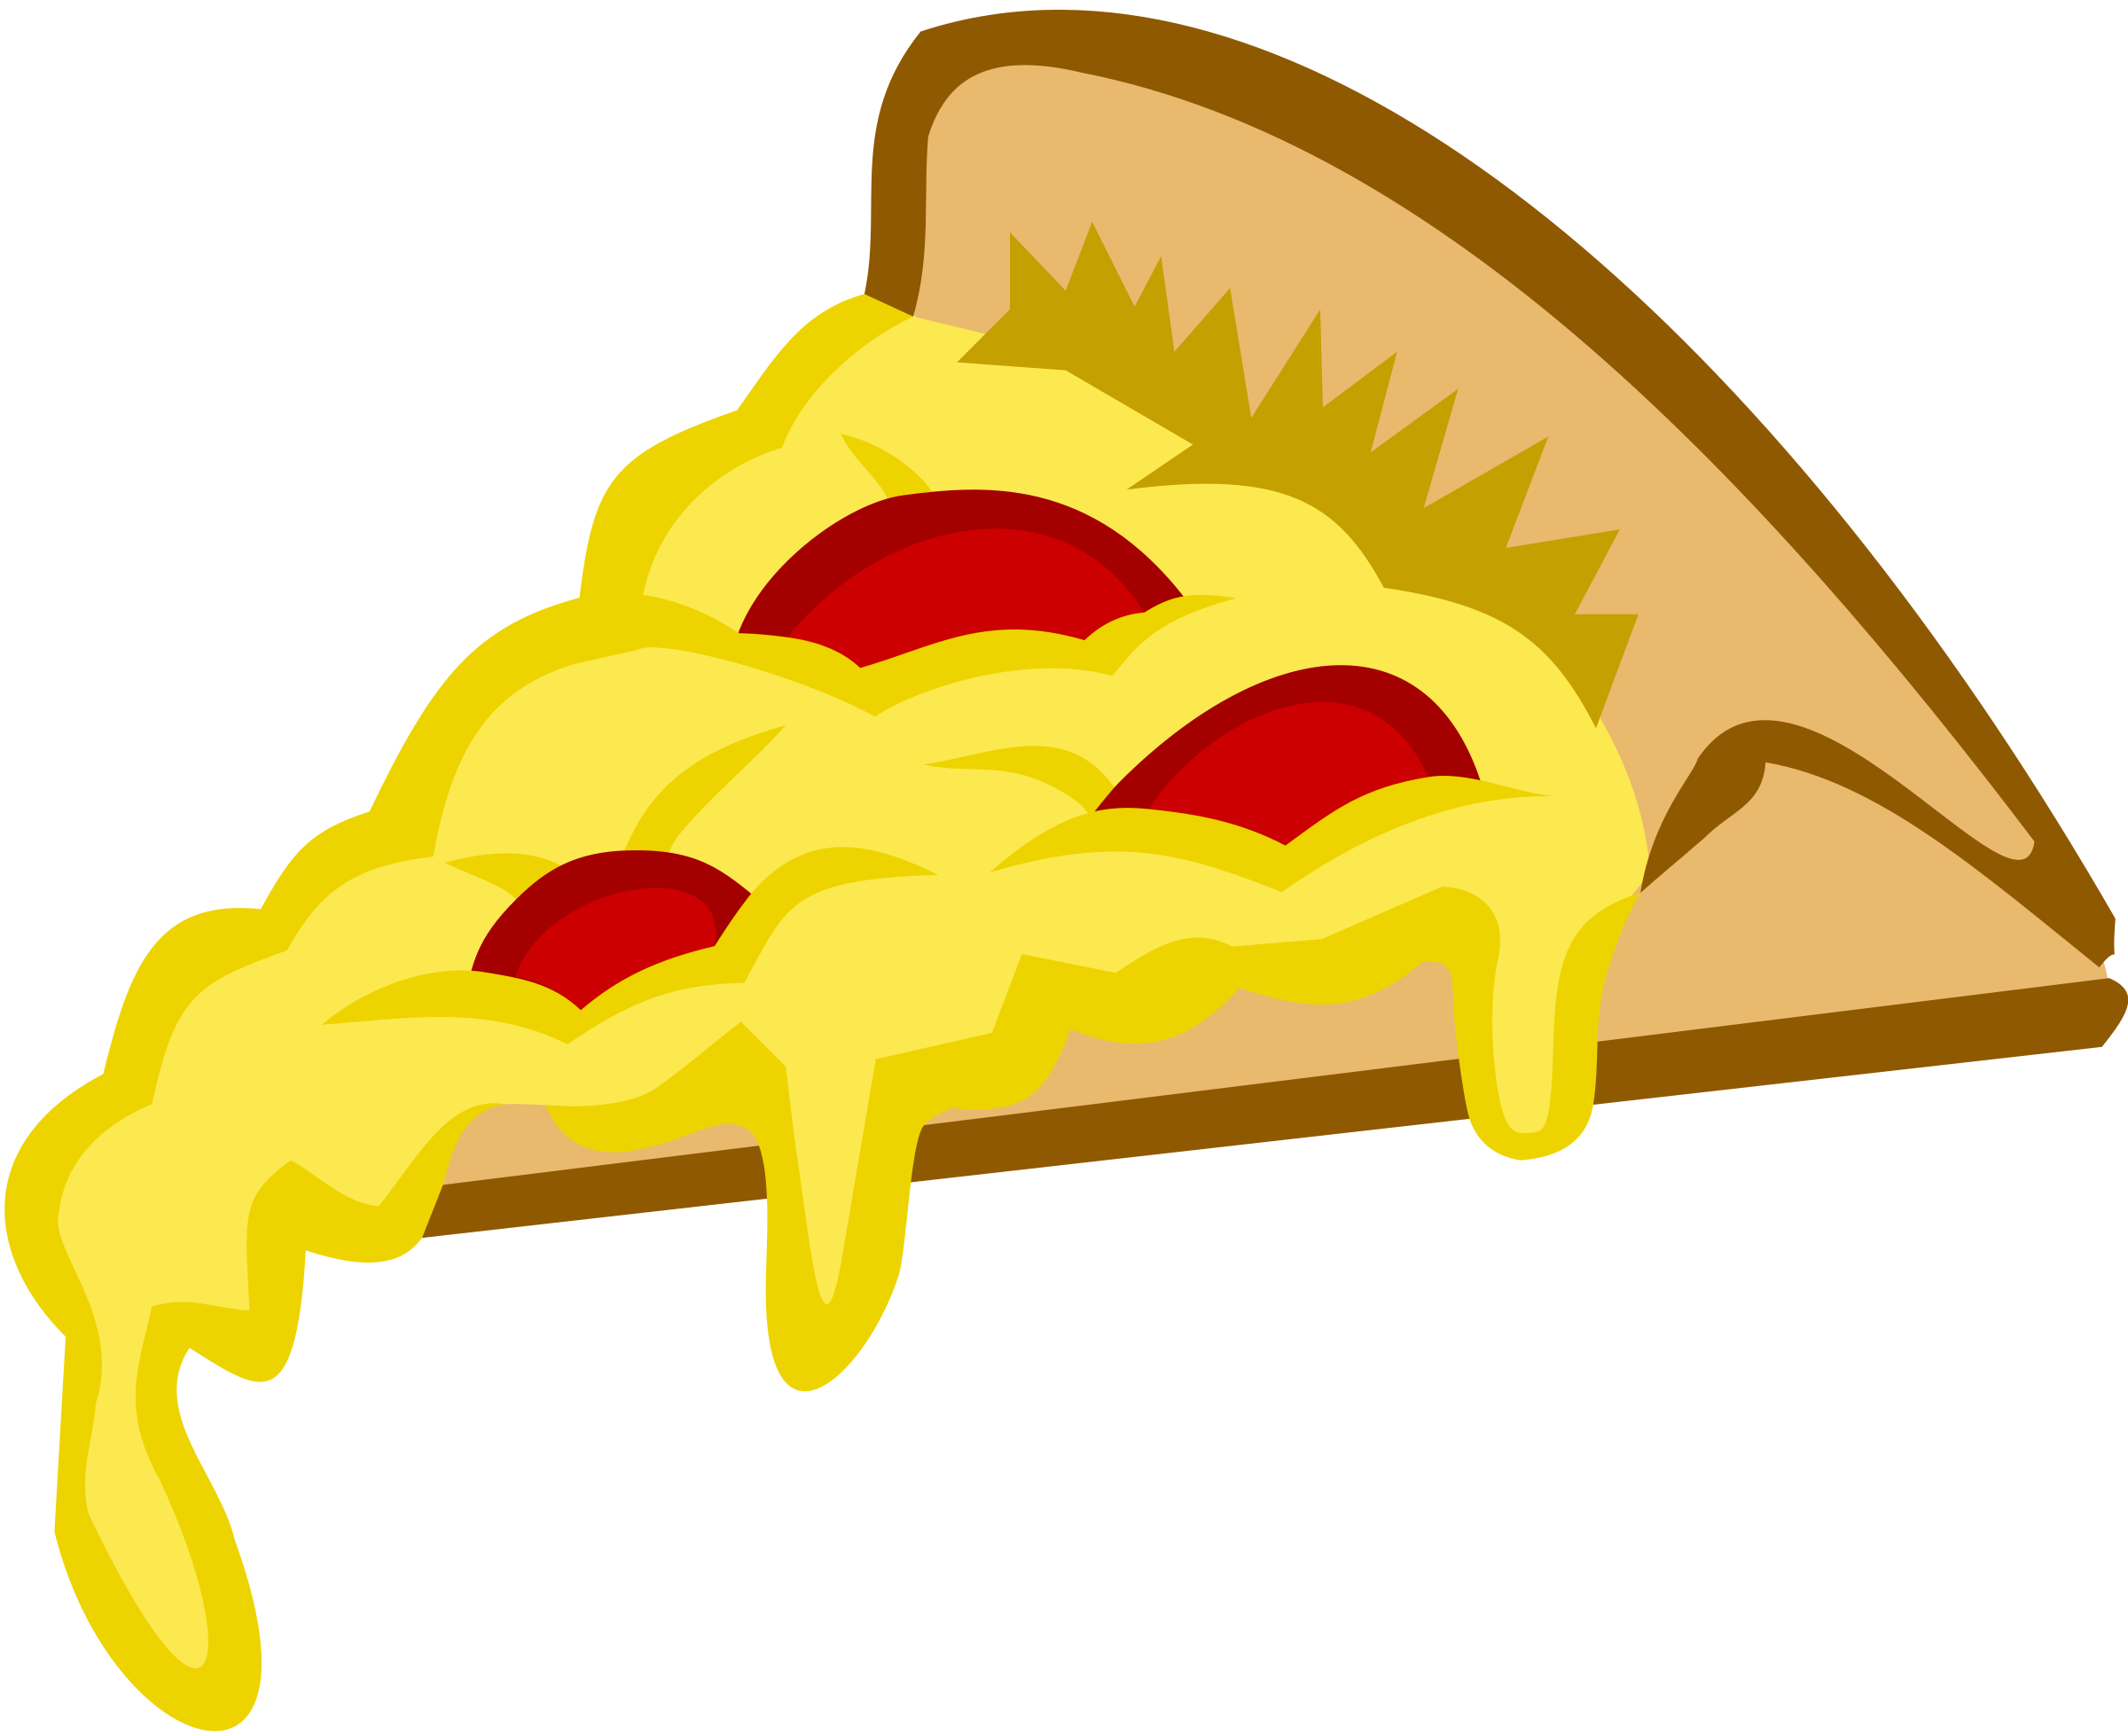 Free clipart kids funny slices of cheese. Grilled download clip art